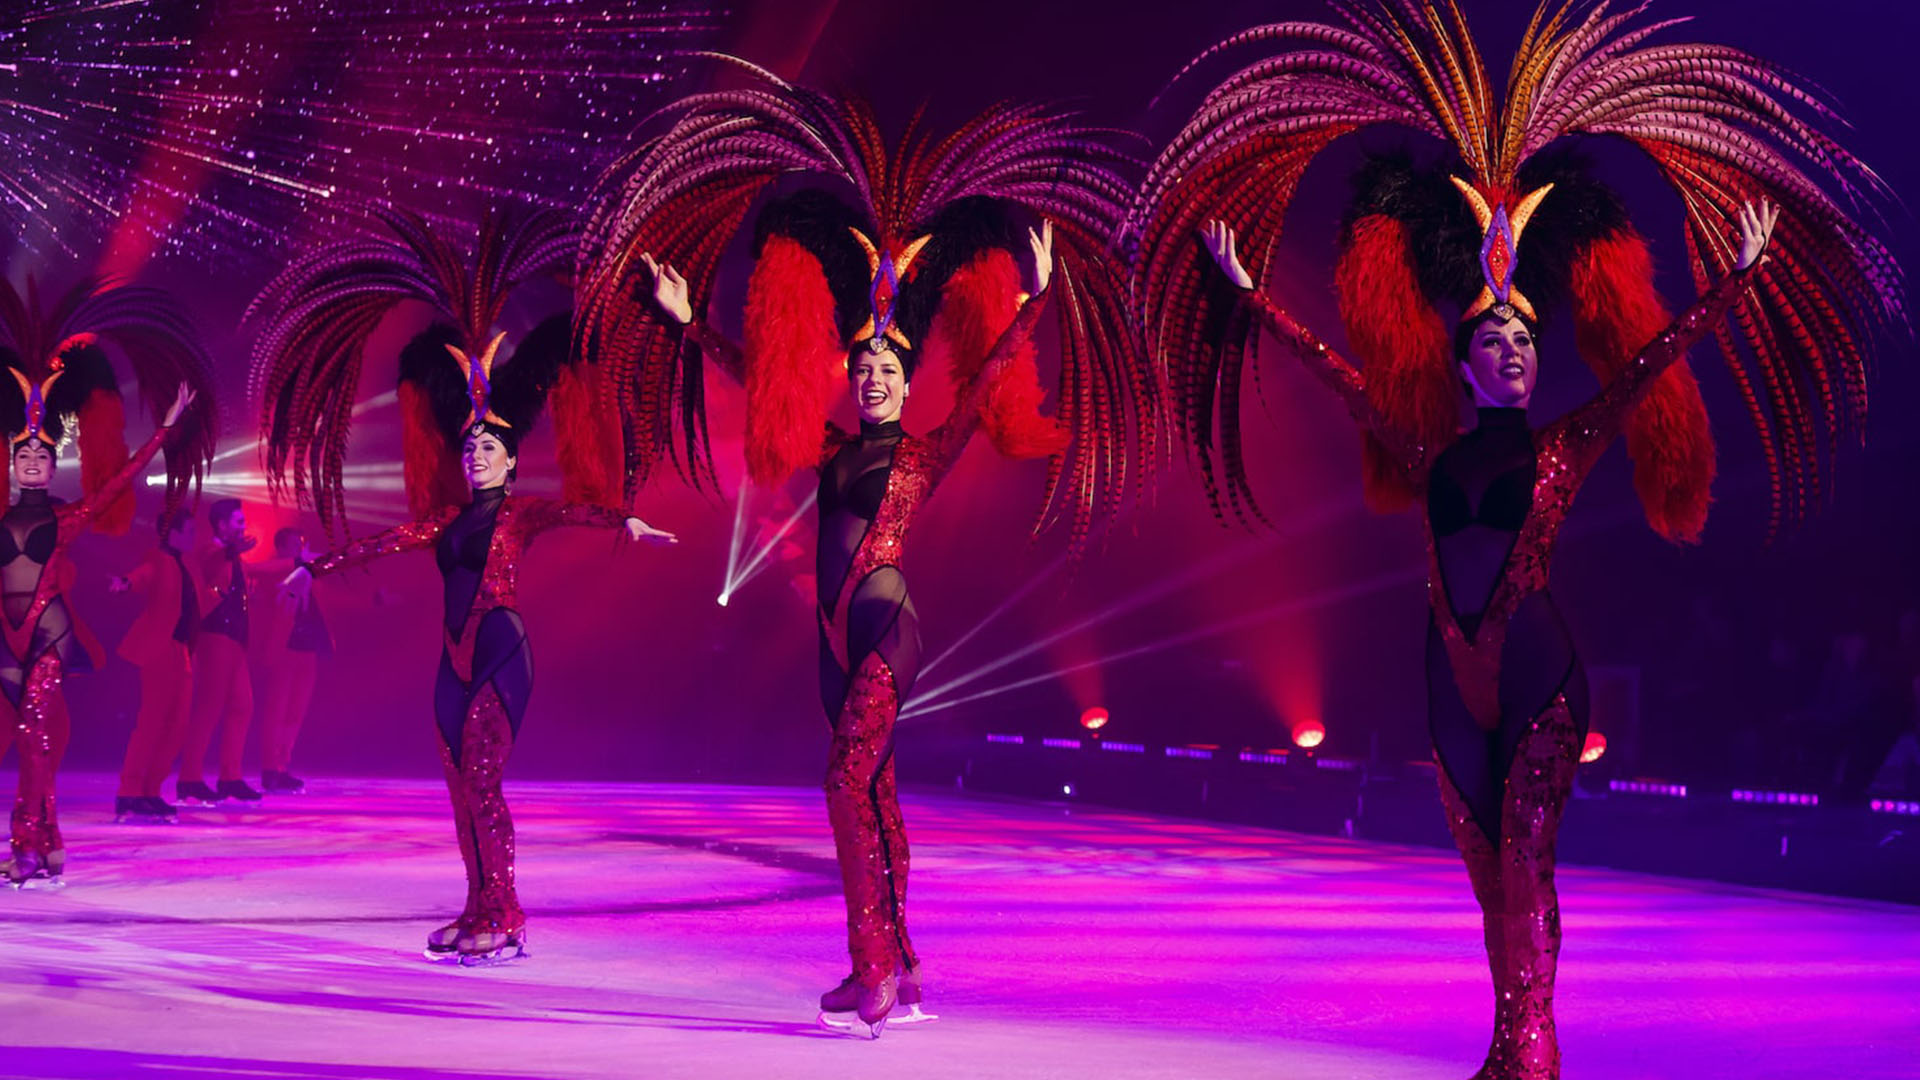 1-min_0004_--staging.holidayonice.com-core-wp-content-uploads-sites-2-2017-08-time-05